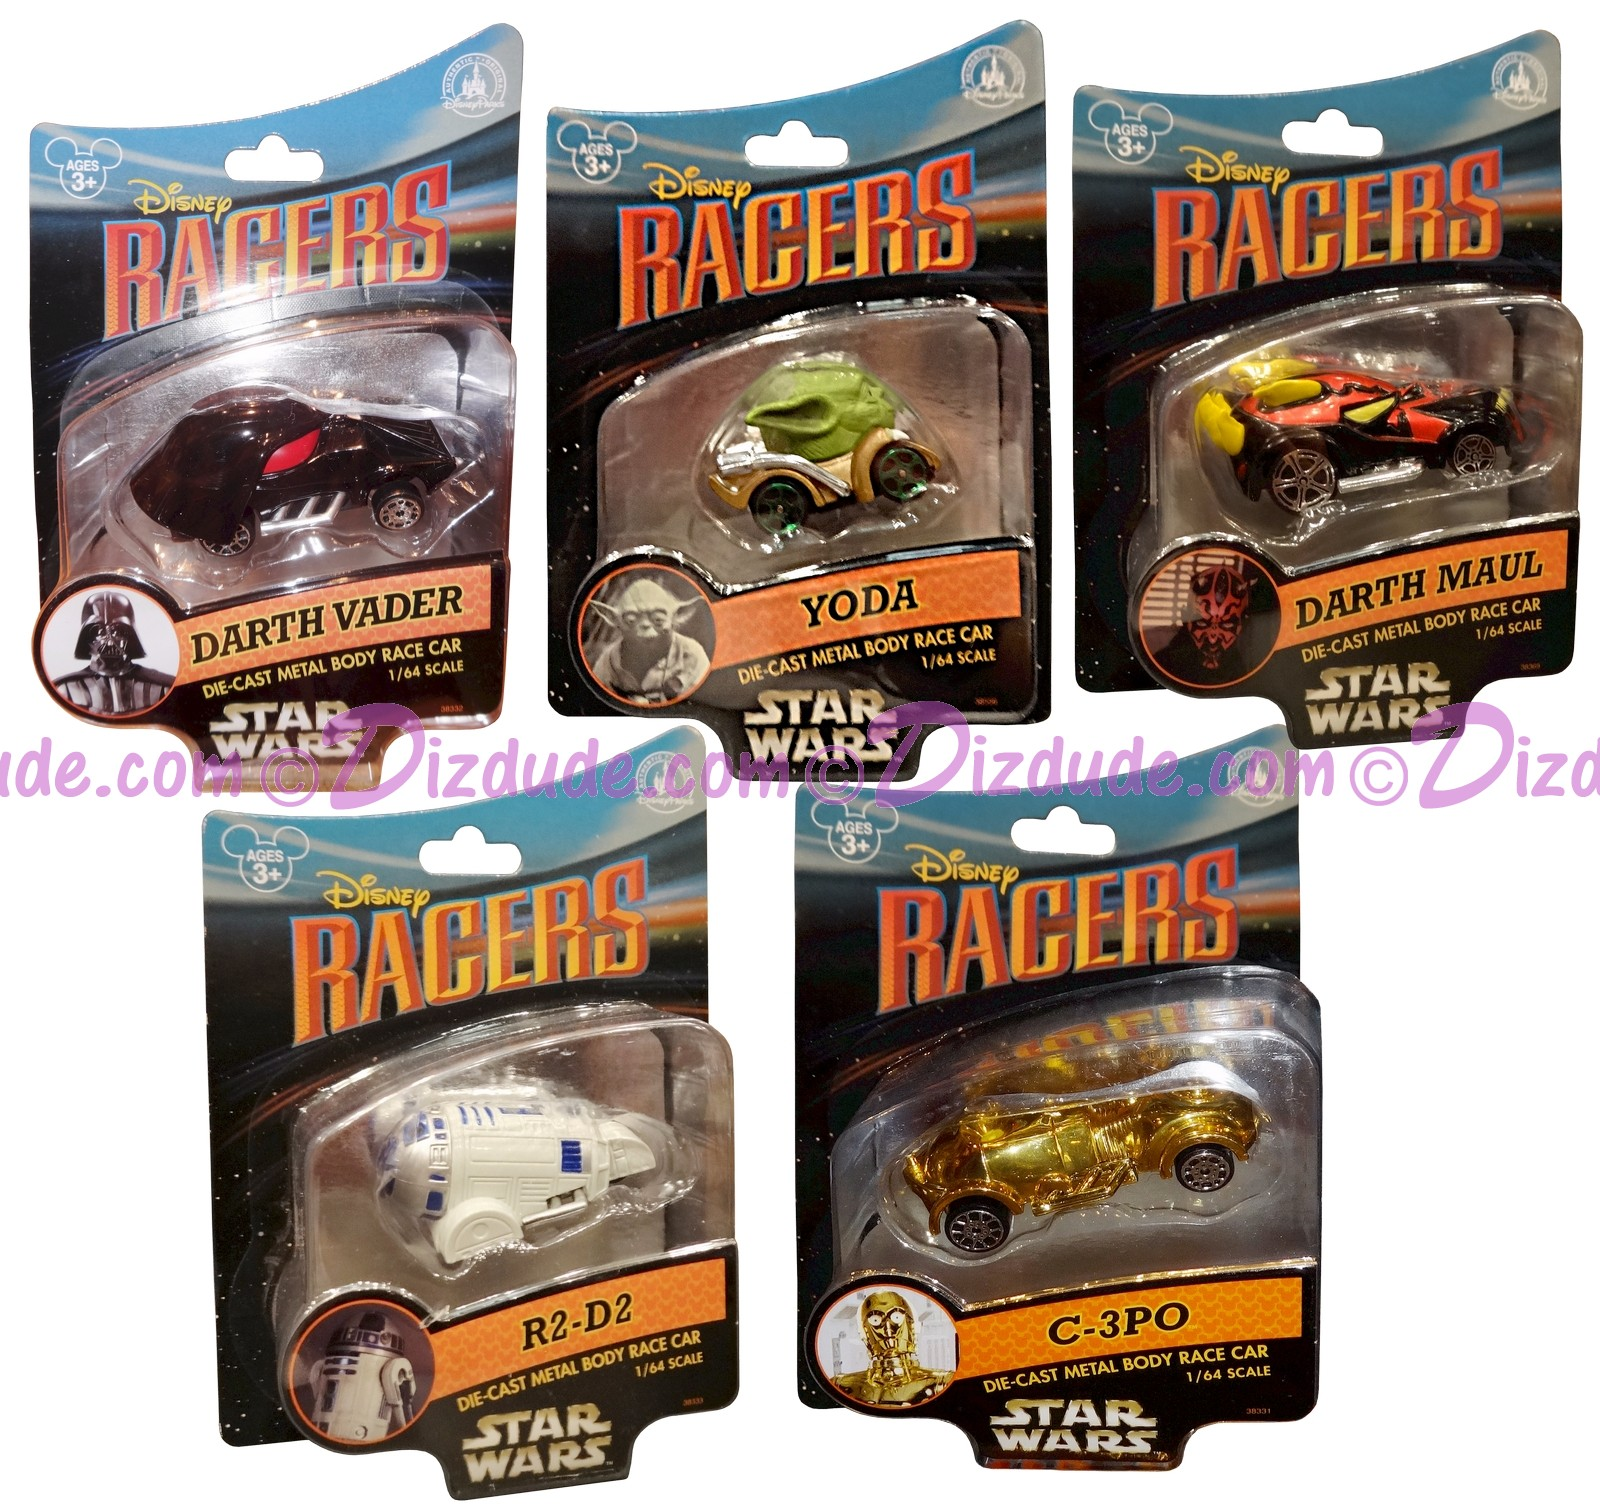 Star Tours Disney Racers Set with Darth Vader • Darth Maul • Yoda • C-3PO and R2-D2 - Disney Star Wars Weekends 2014 © Dizdude.com